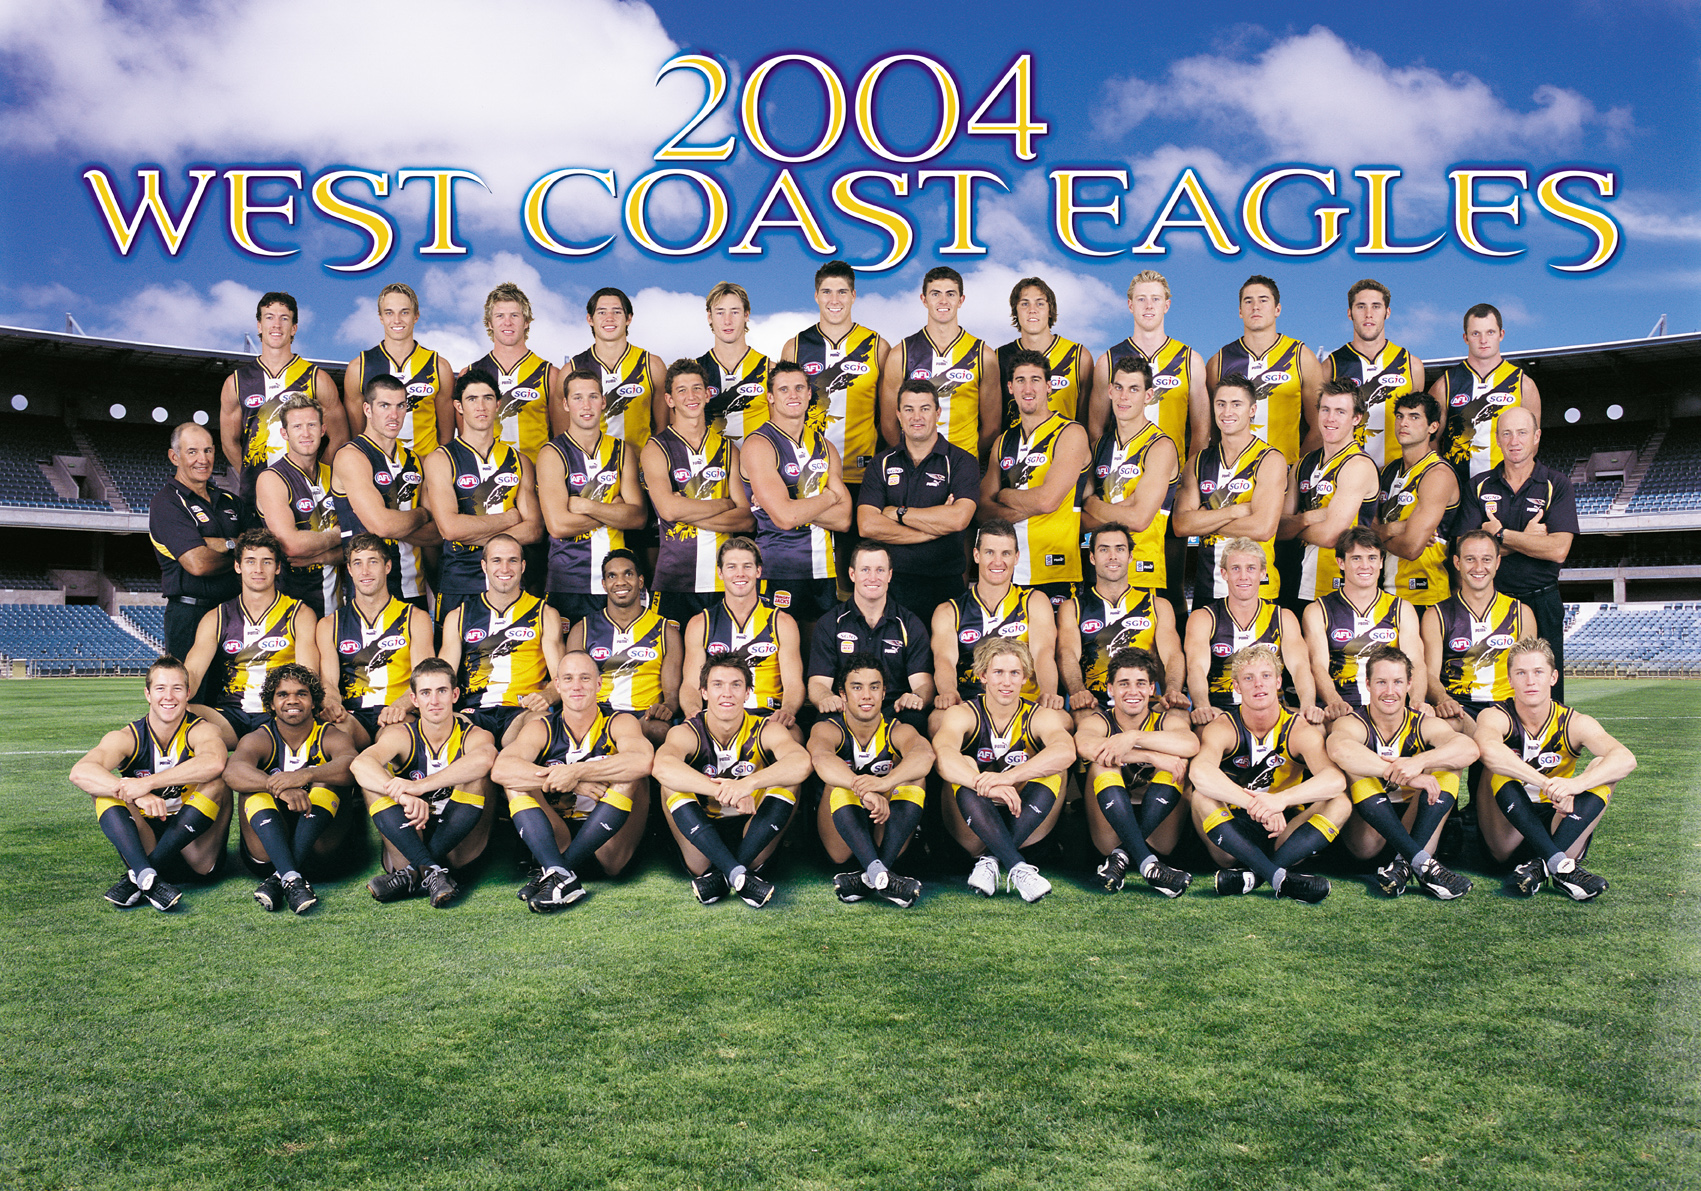 Good Night Wallpapers With Quotes Free Download Download West Coast Eagles Wallpaper Gallery